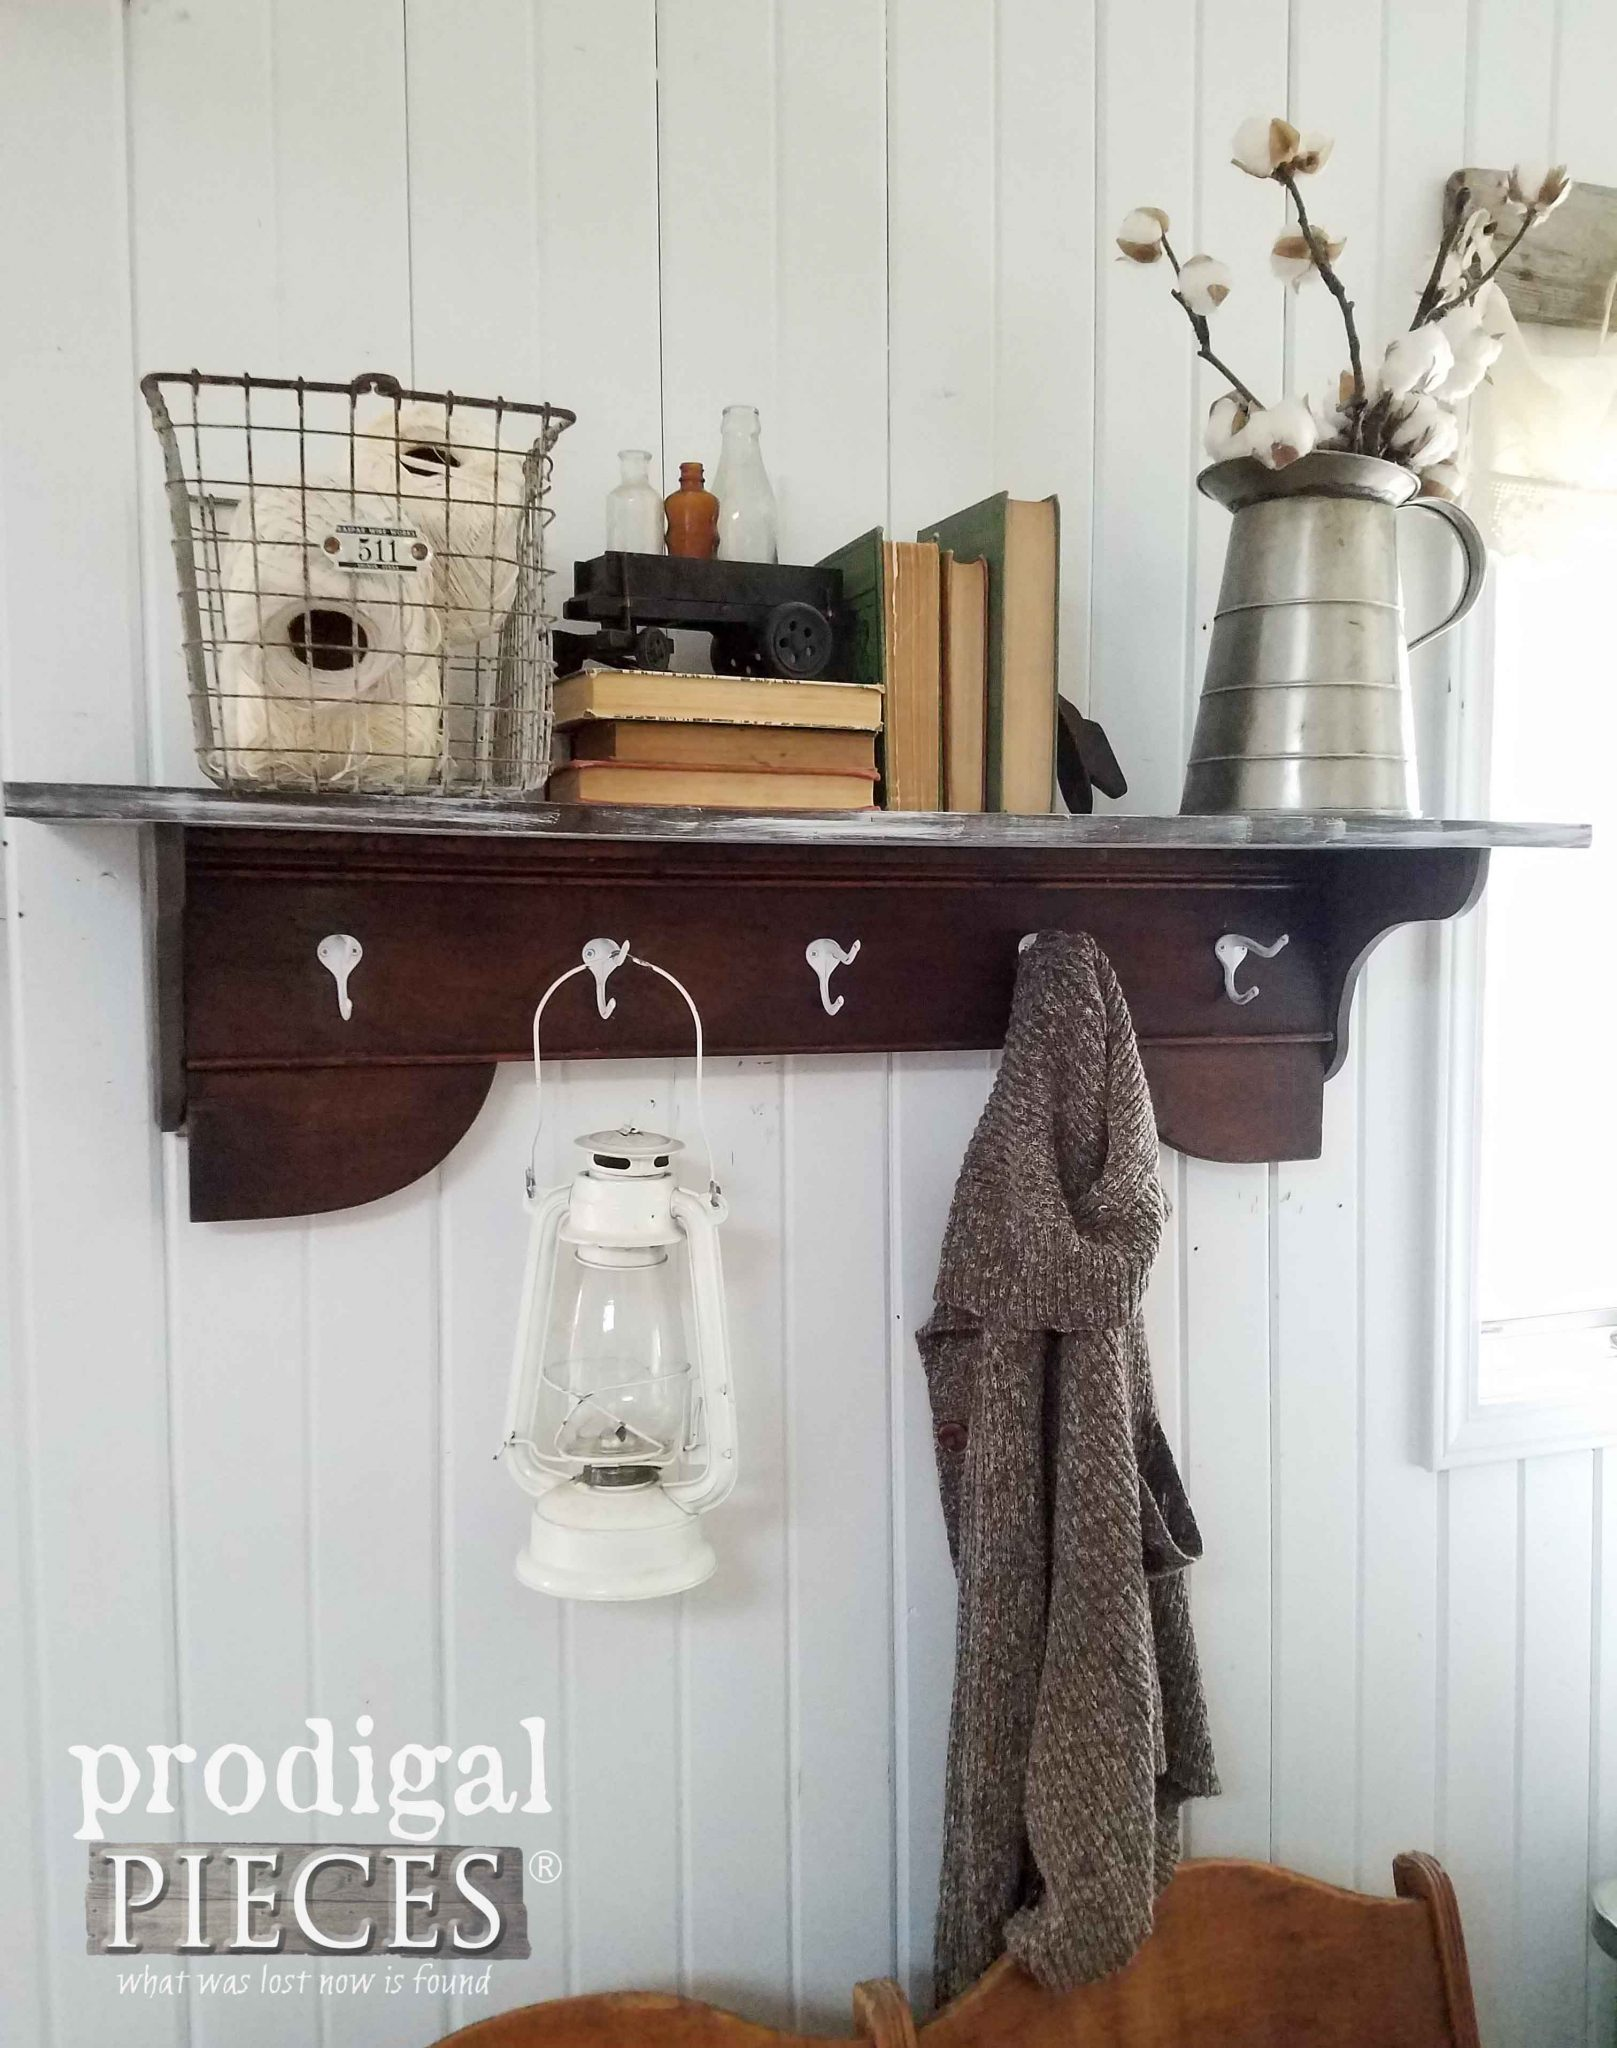 Reclaimed Bed Turned into Rustic Farmhouse Coat Rack by Prodigal Pieces | prodigalpieces.com